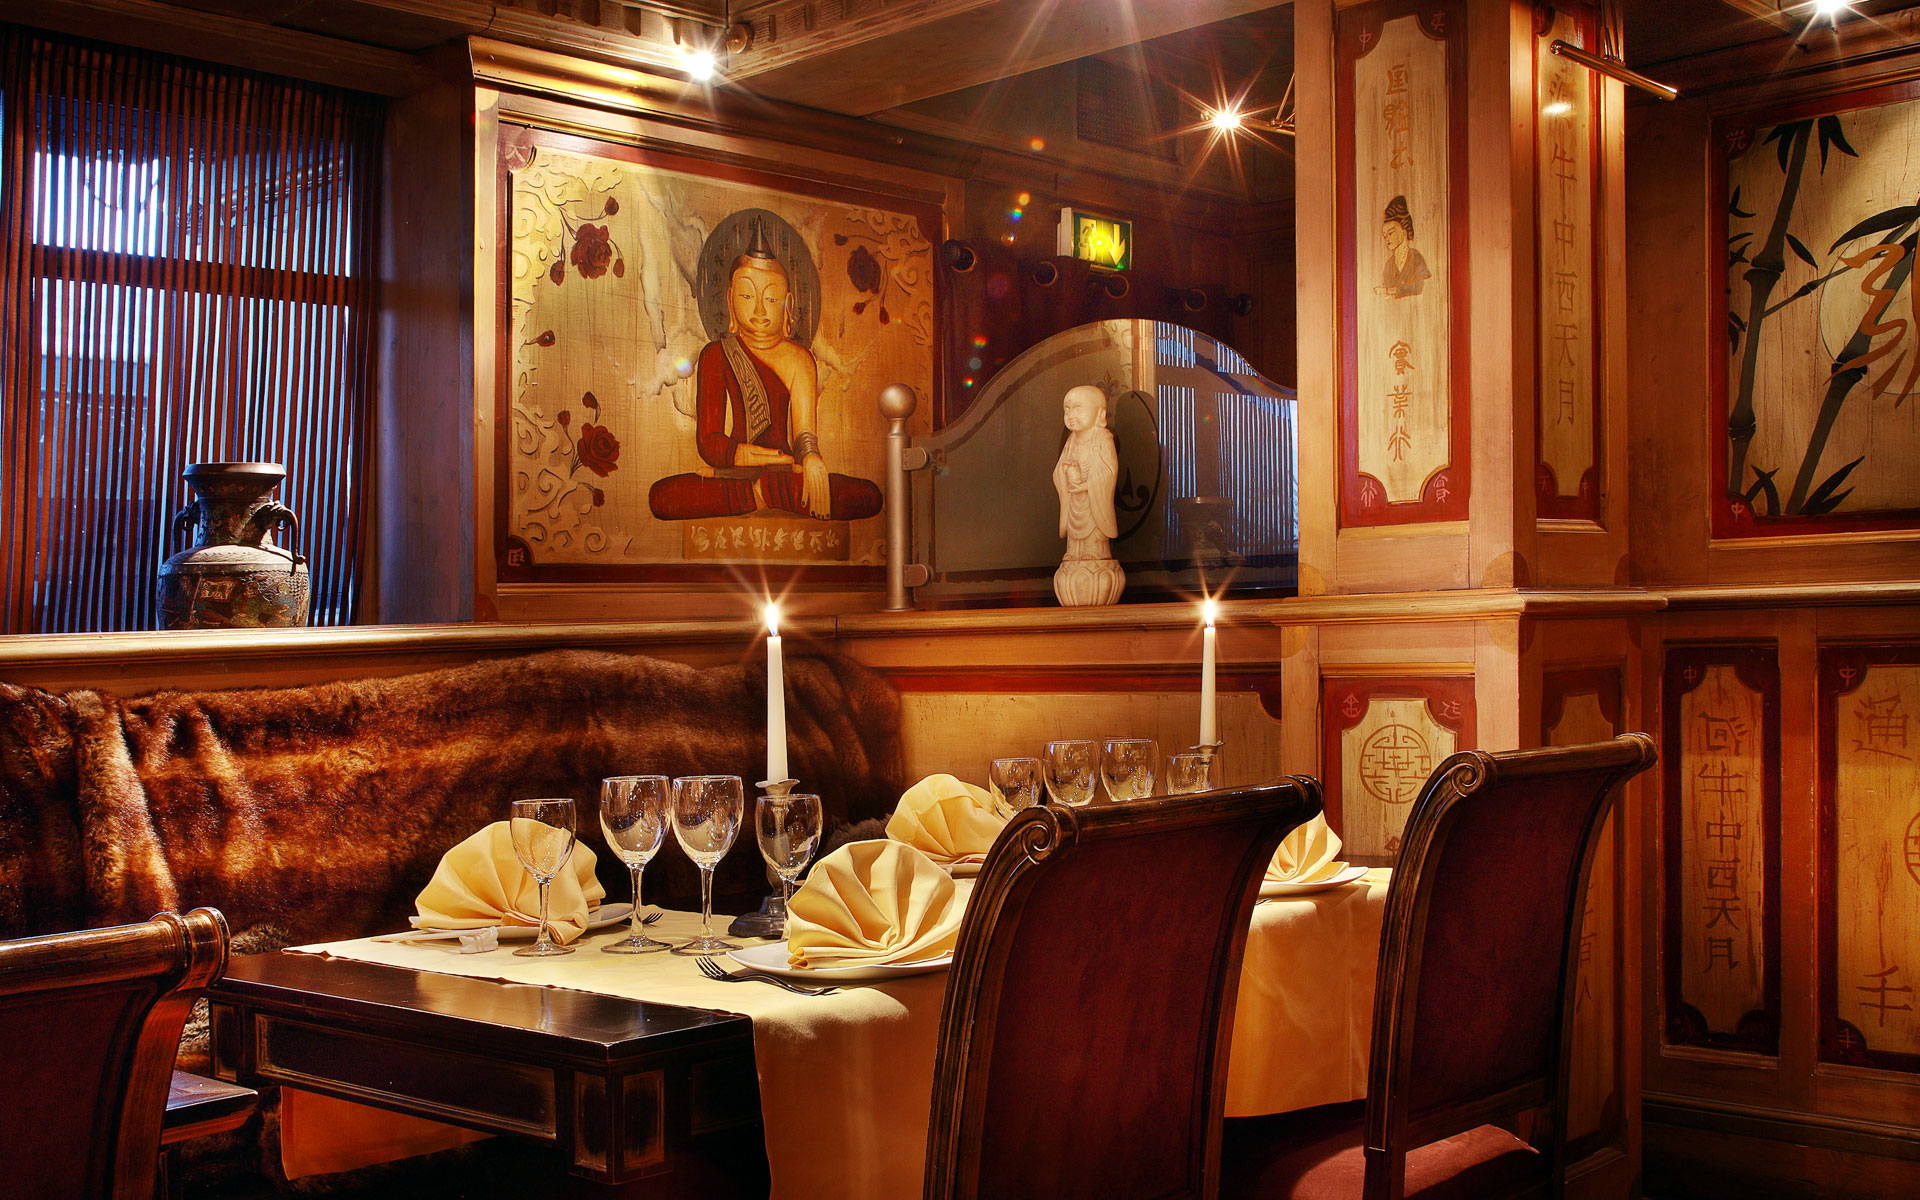 302/Site Maison Tournier/Restaurant/Grand Café Courchevel/grand_cafe_courchevel_restaurant_6.jpg